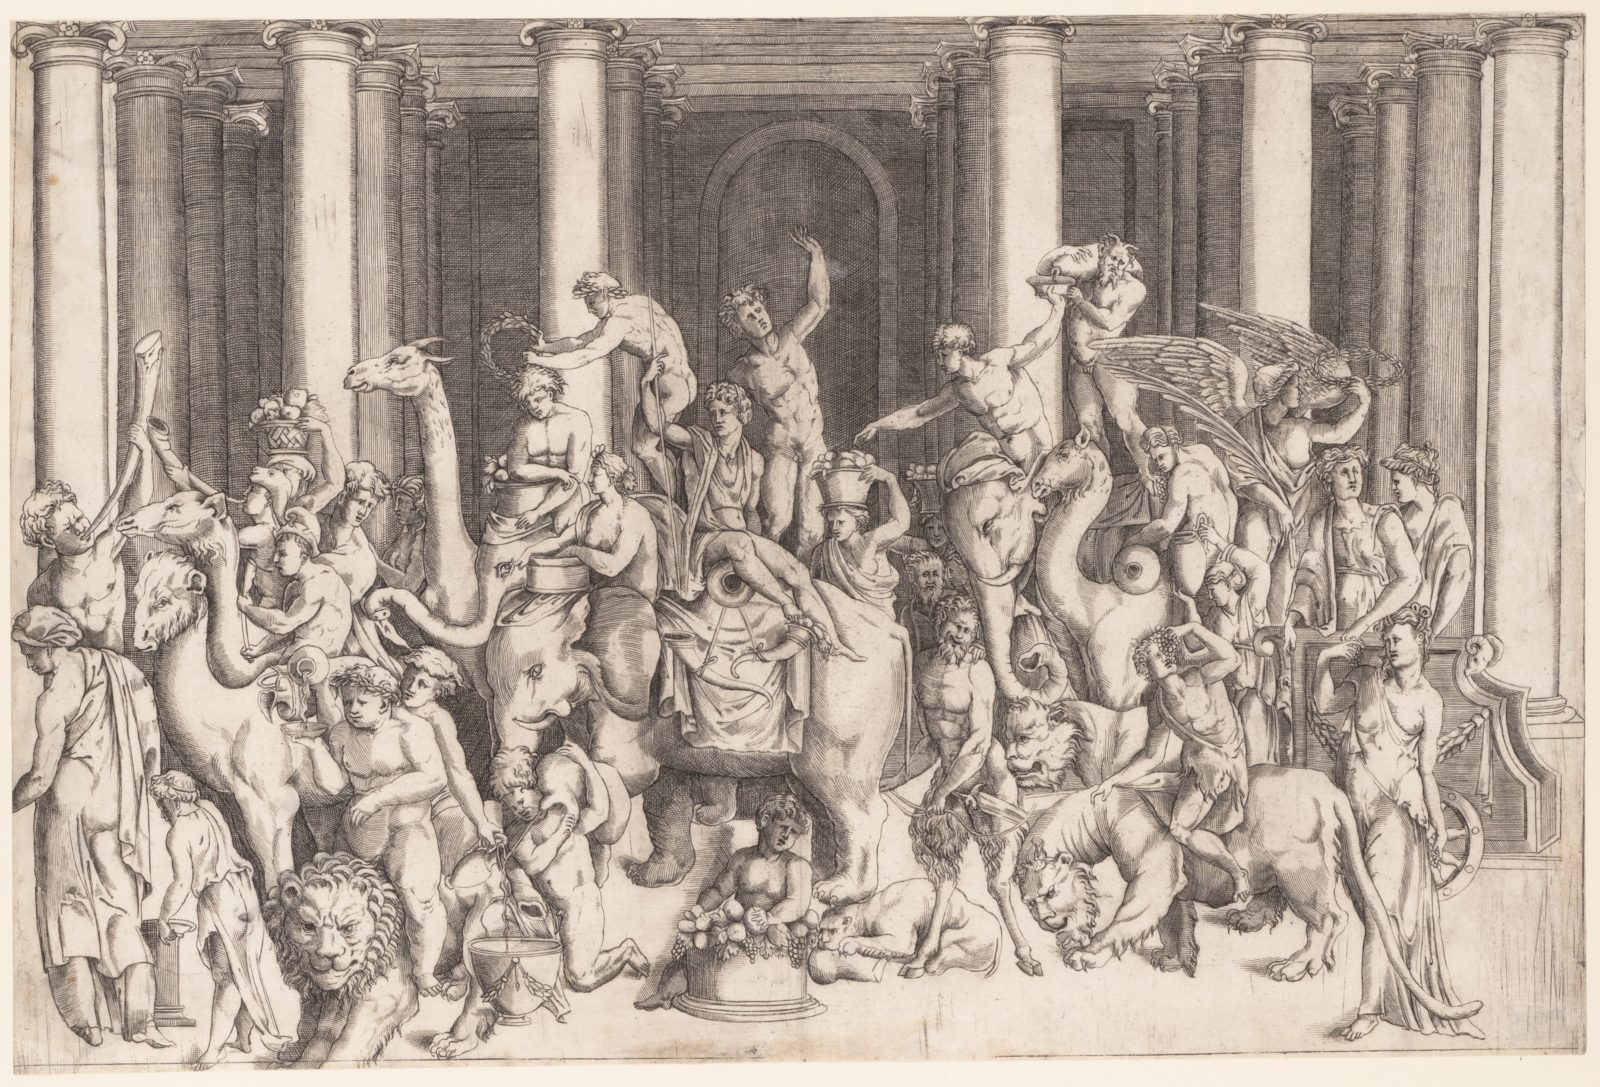 The Indian Triumph of Bacchus